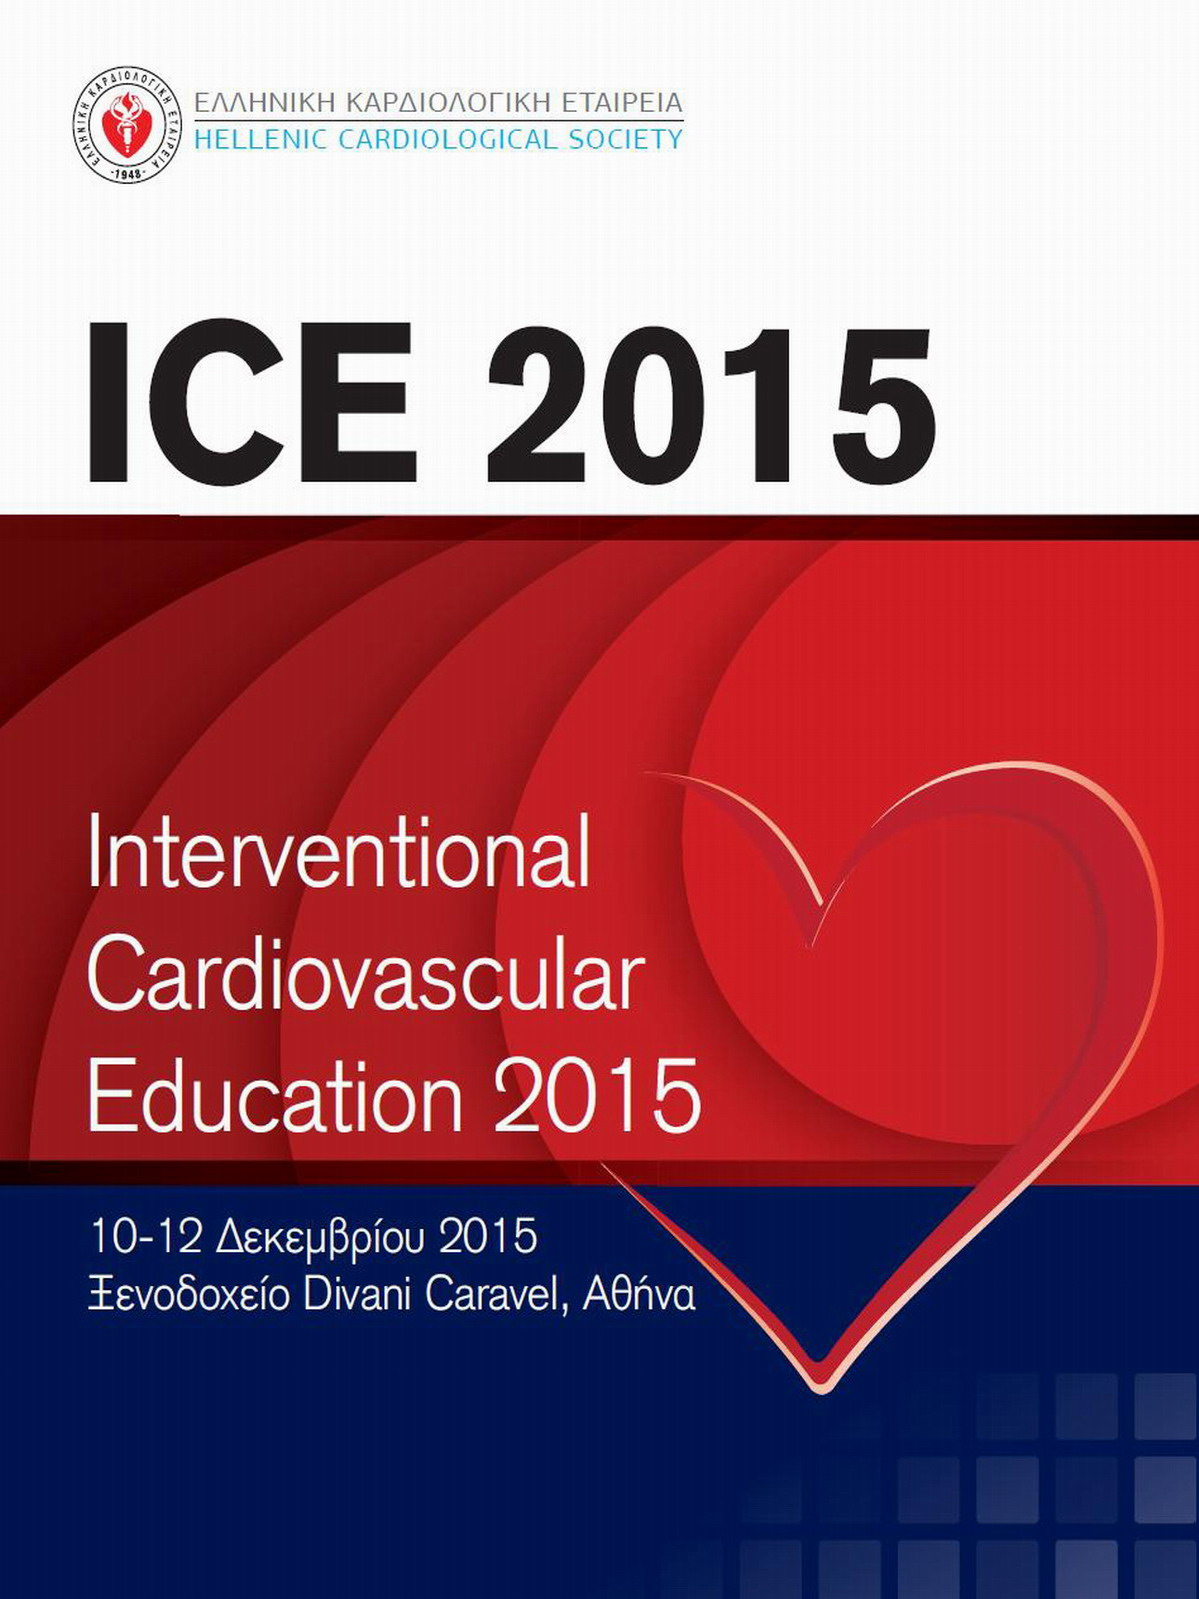 Interventional Cardiovascular Education 2015